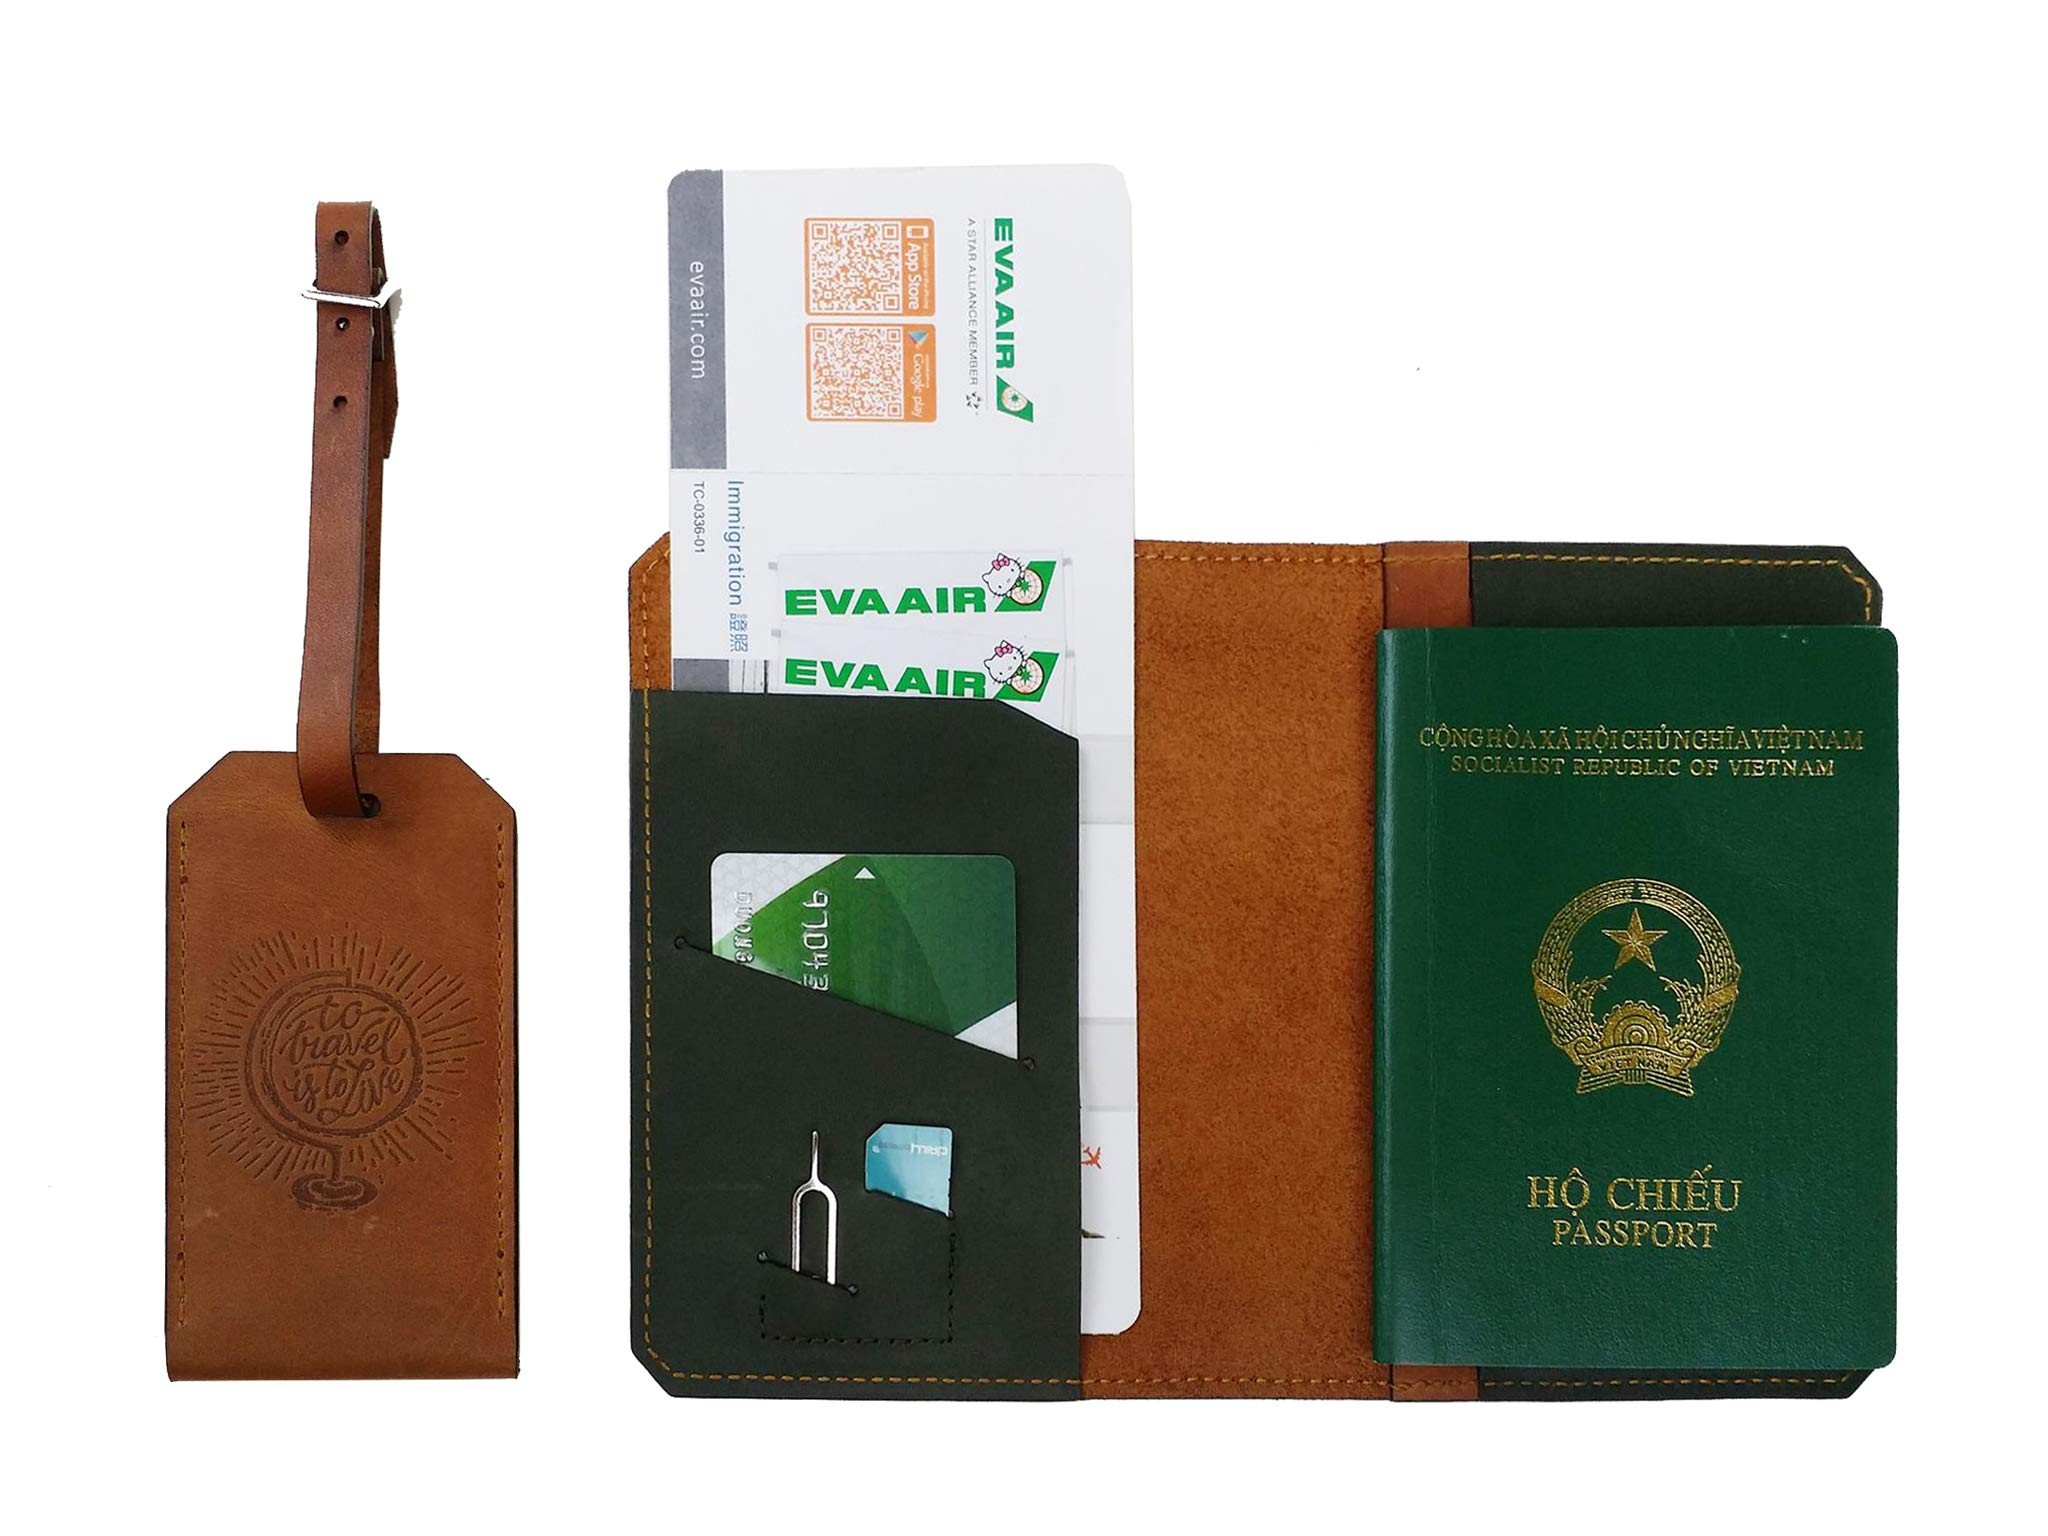 Handmade Curious Leather Travel Set – Passport Cover Luggage Tag – SIM Card Eject Pin Tool Included (to Travel is to Live)